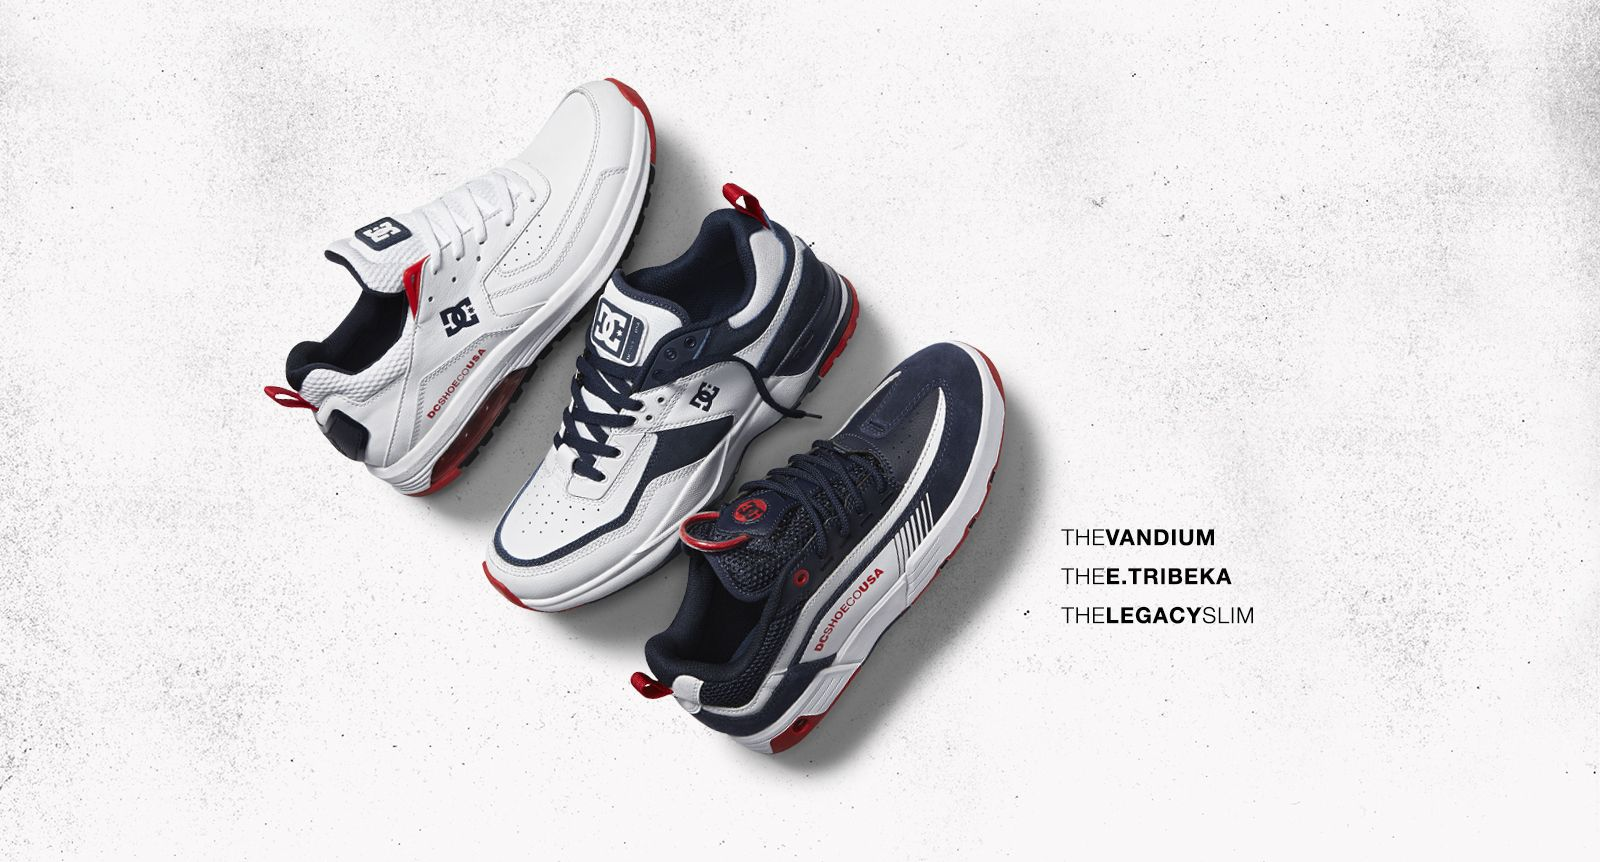 3e264bec3c Memory Flag - The Bold Reinvention of Heritage | DC Shoes